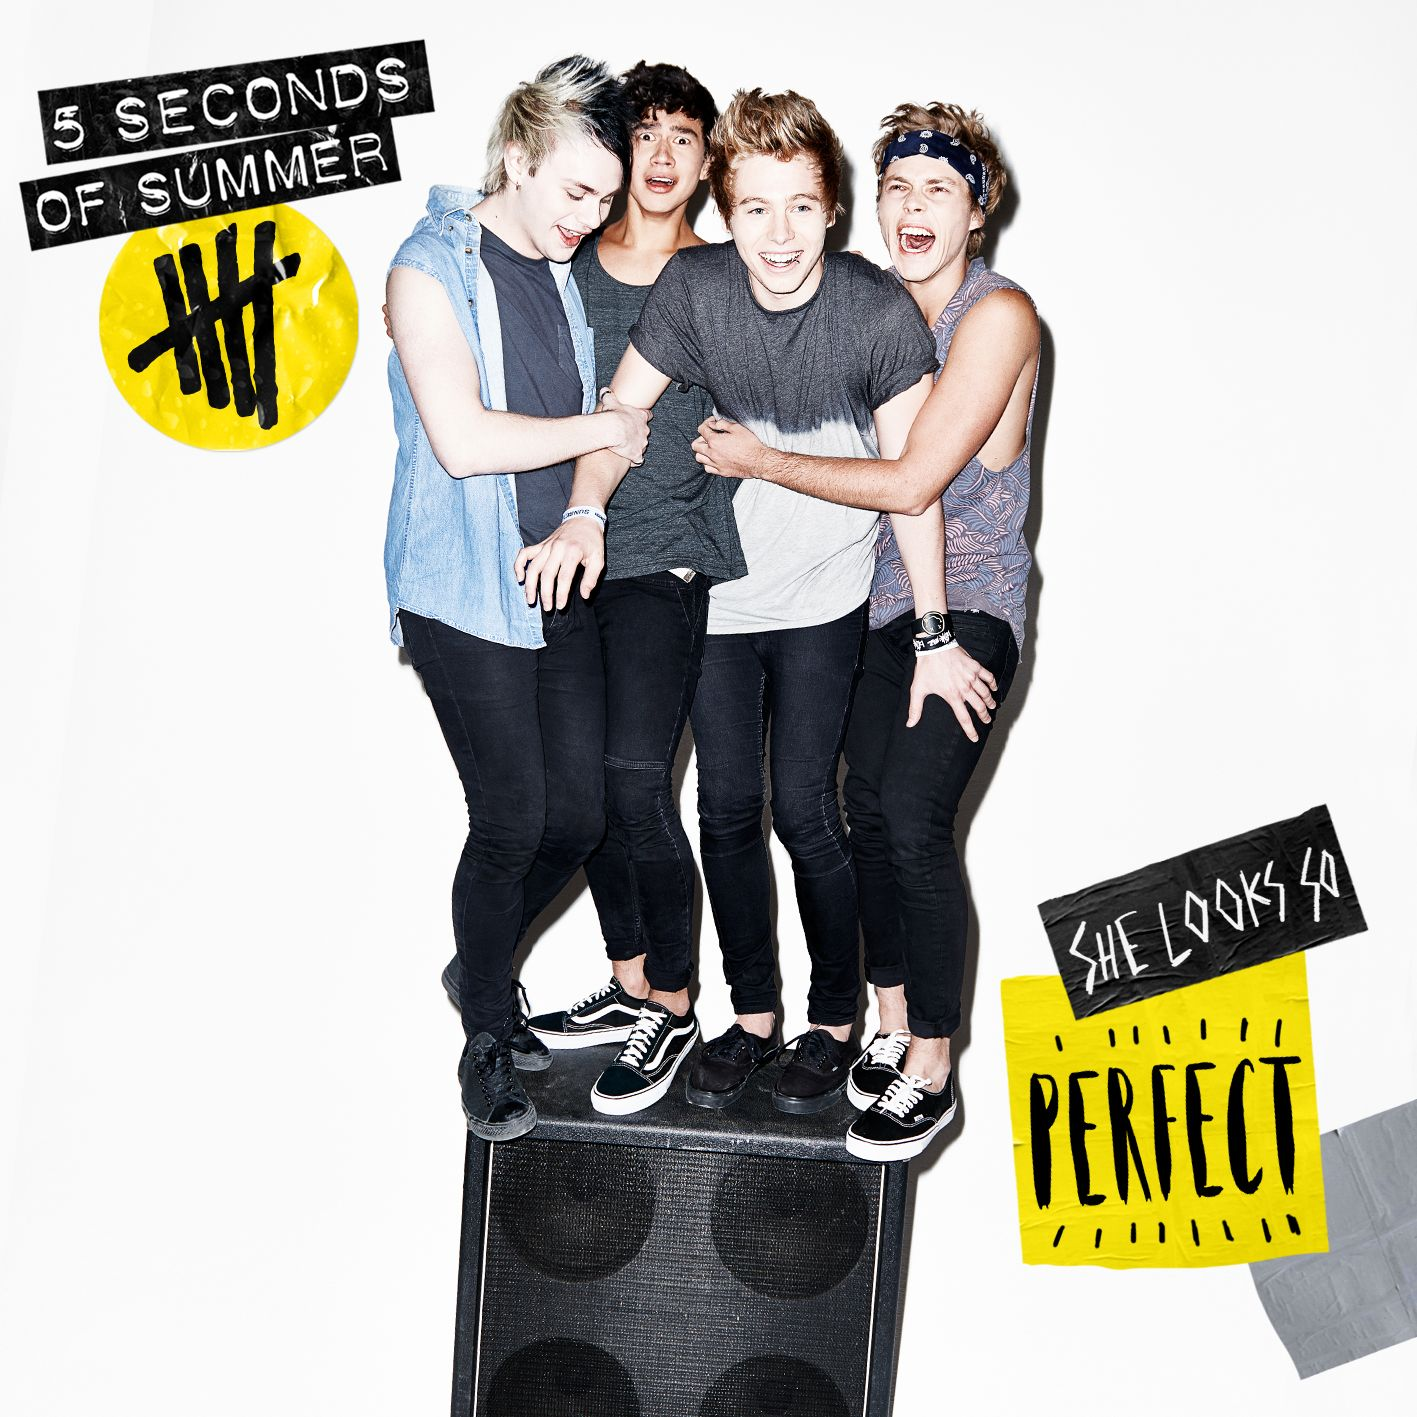 5 Seconds Of Summer - She Looks So Perfect (ep) album cover